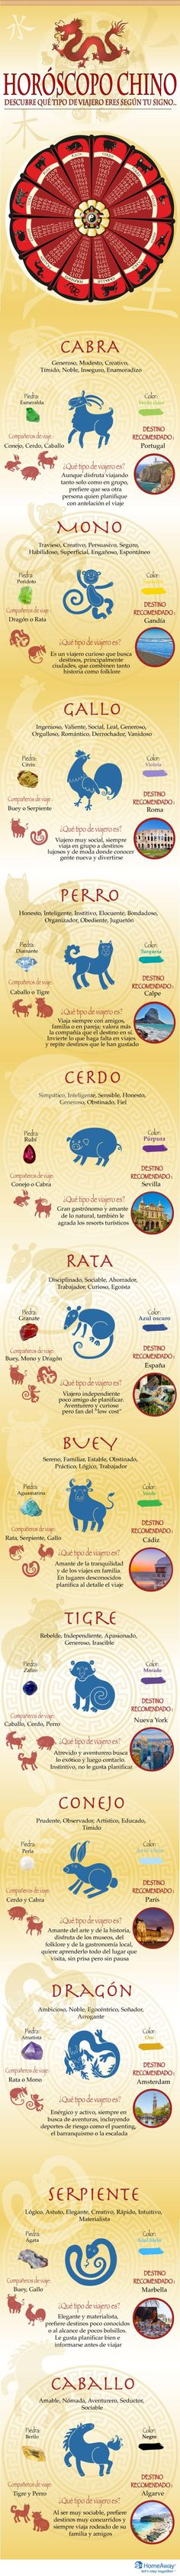 112 best Año Nuevo Chino images on Pinterest | Astrology, Chinese ...